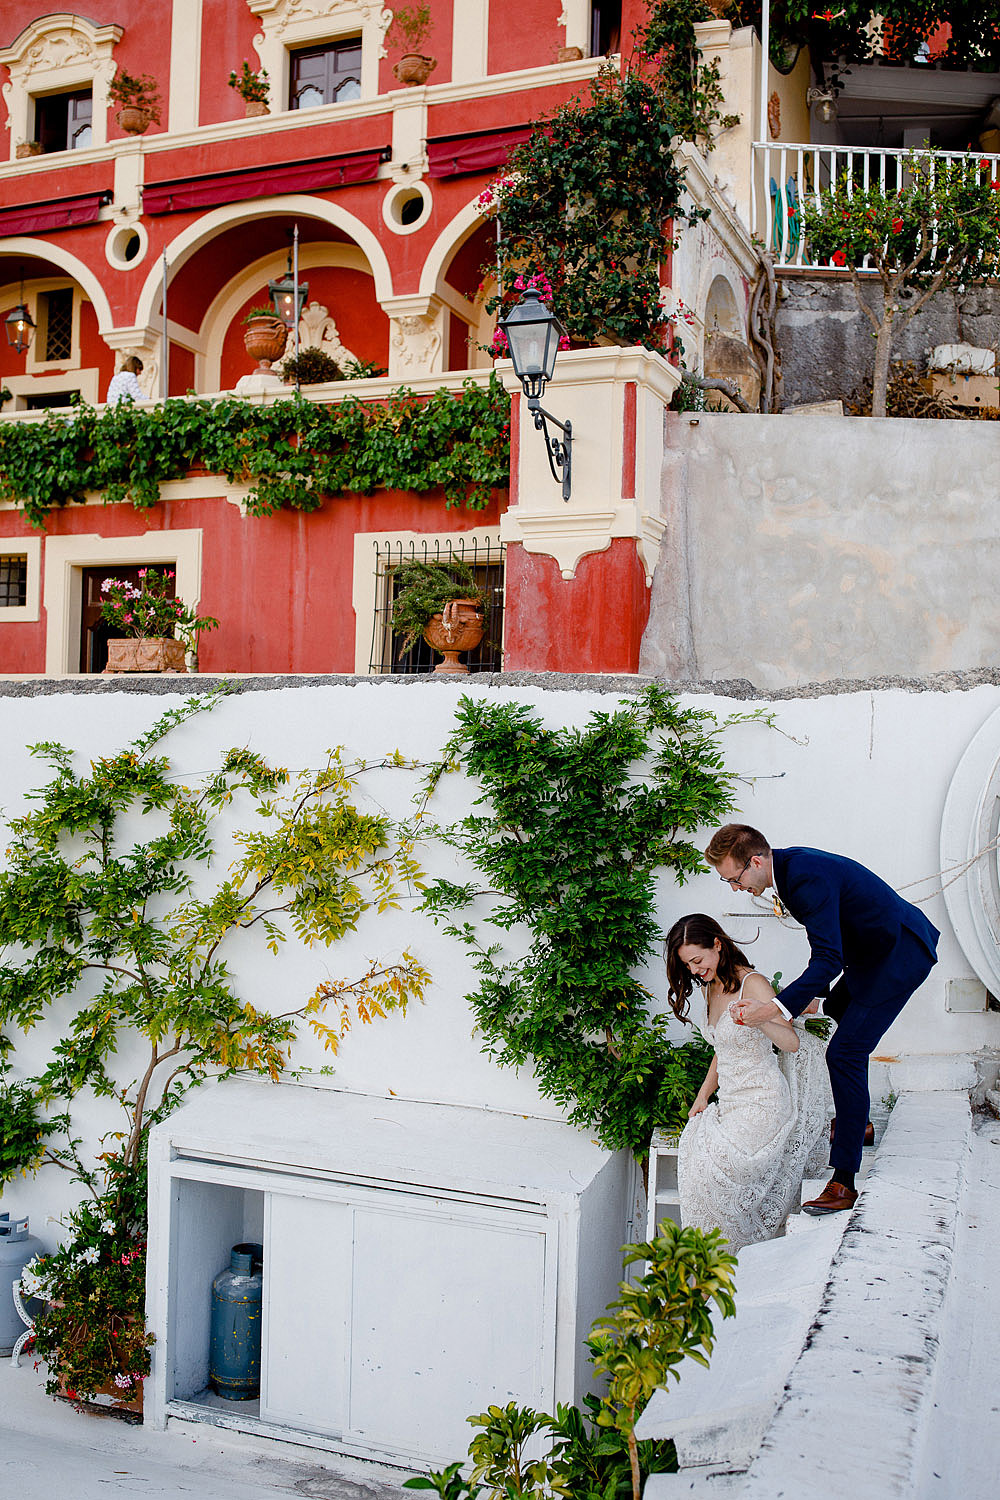 VILLA OLIVIERO MATRIMONIO IN UN LUOGO INCANTATO POSITANO :: Luxury wedding photography - 35